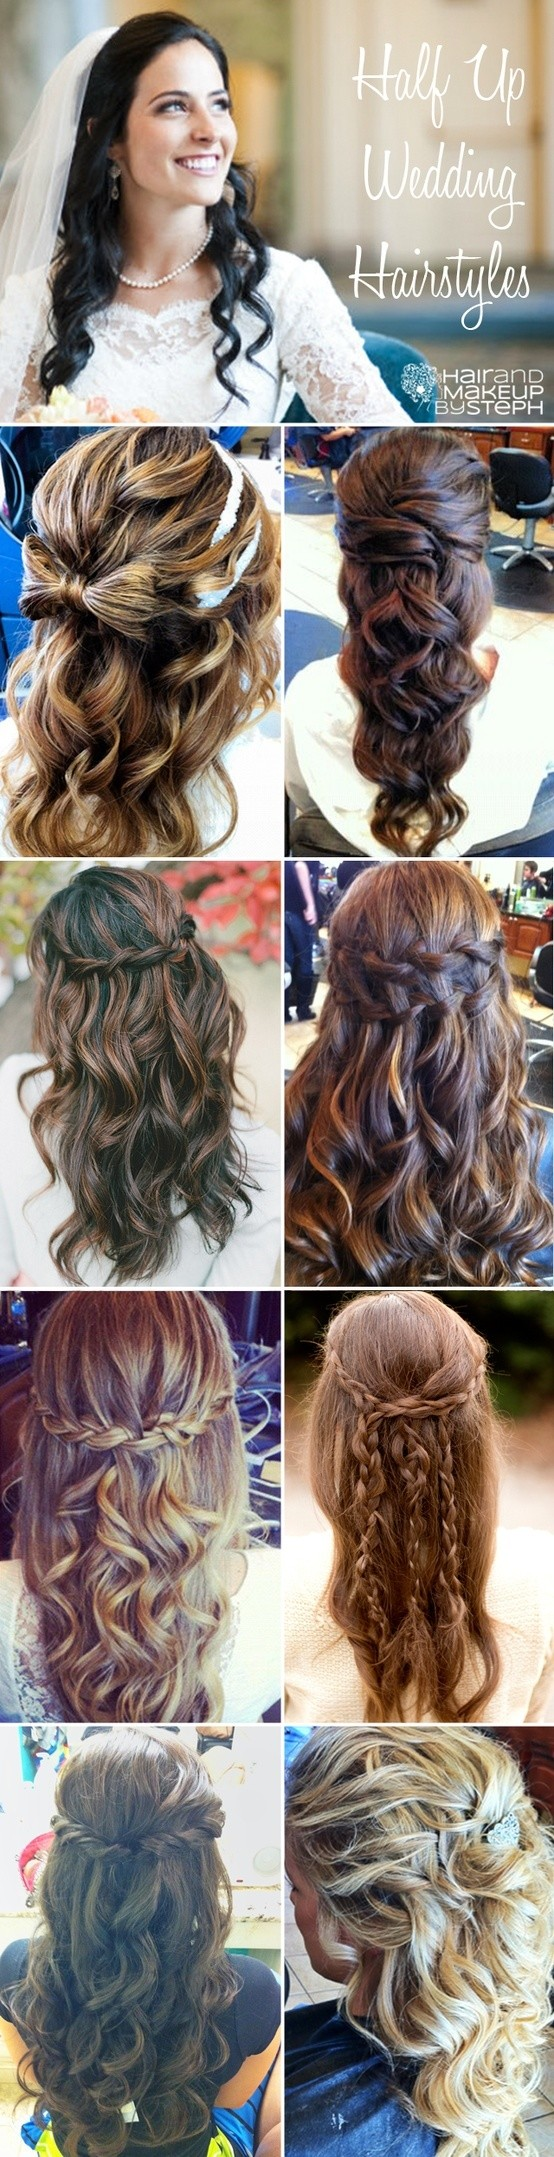 30+ Wedding Hairstyles For Long Hair | Hair style, Prom and Wedding